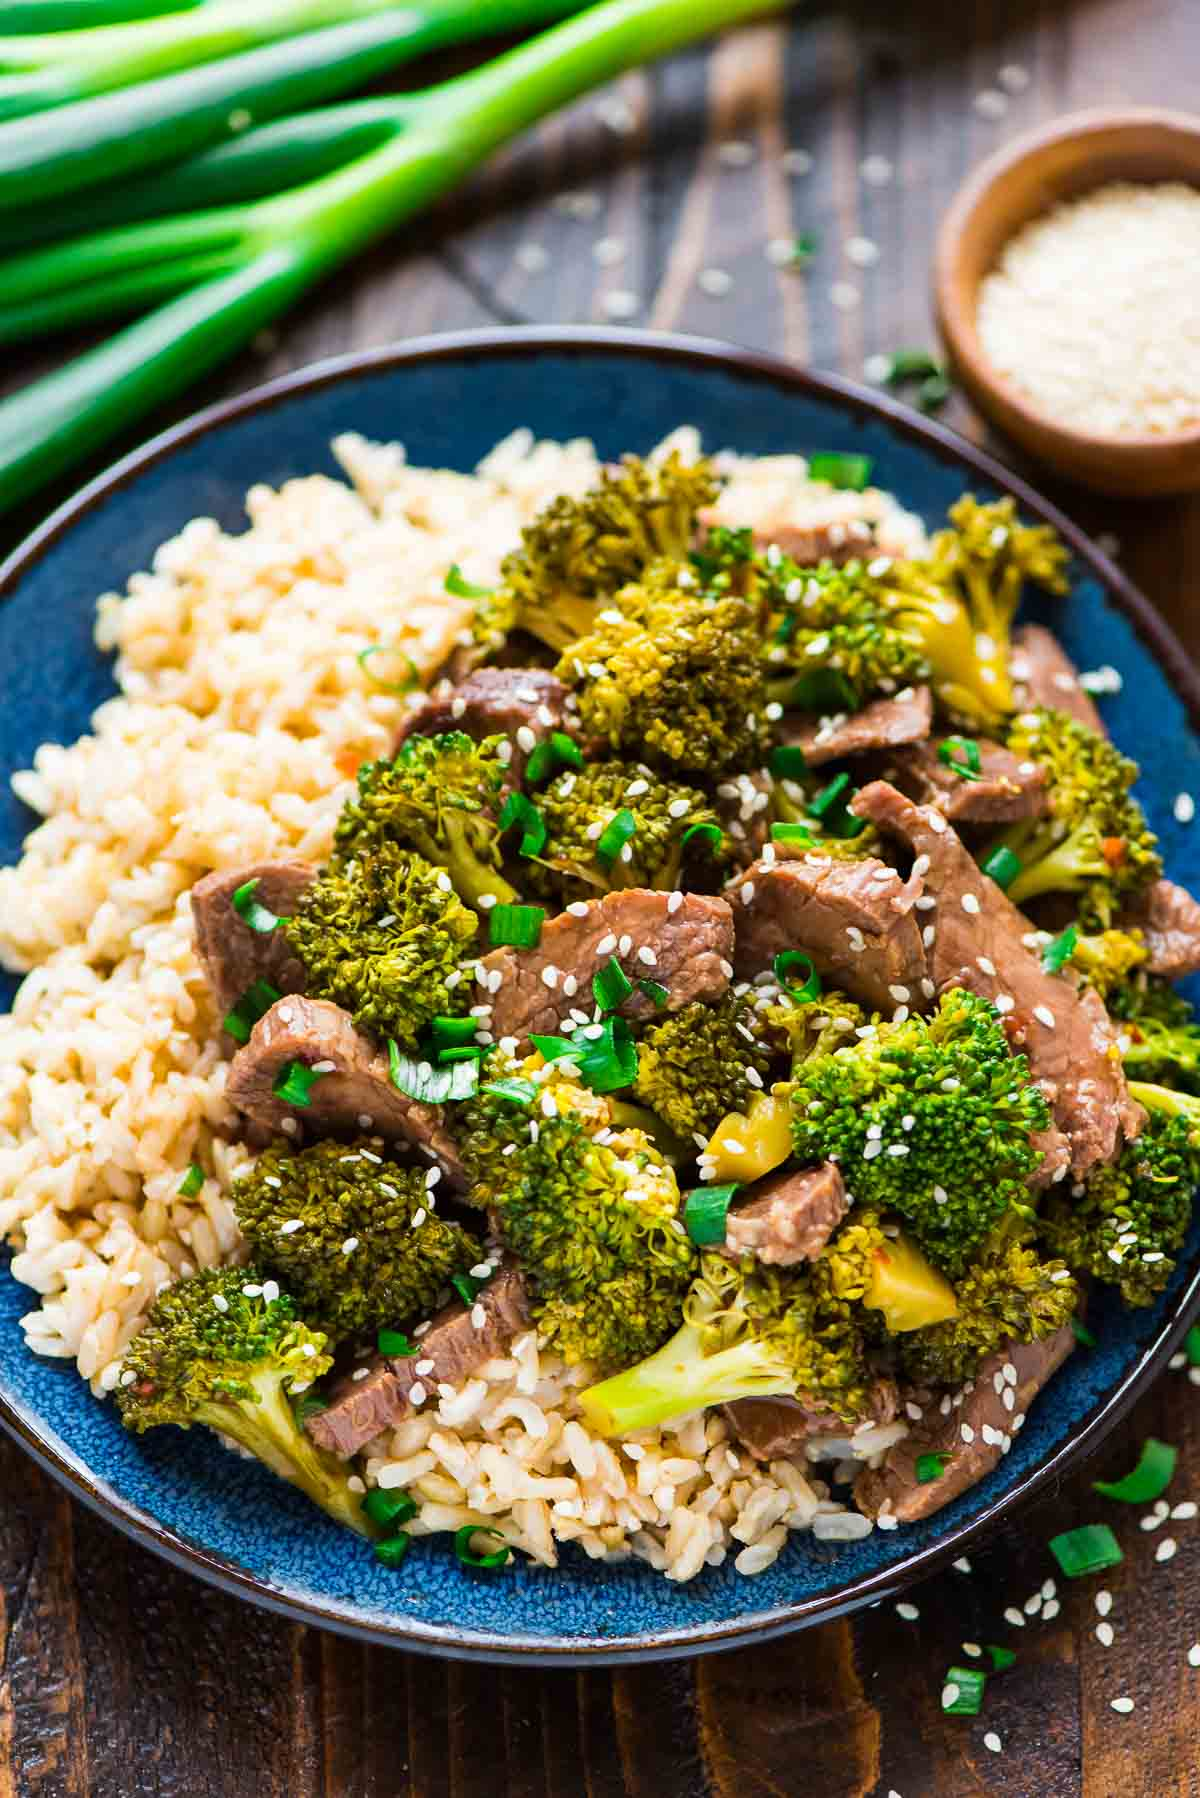 30 Days of Healthy Slow Cooker Dinner Recipes - Slow Cooker Beef and Broccoli via Well Plated | http://www.roseclearfield.com